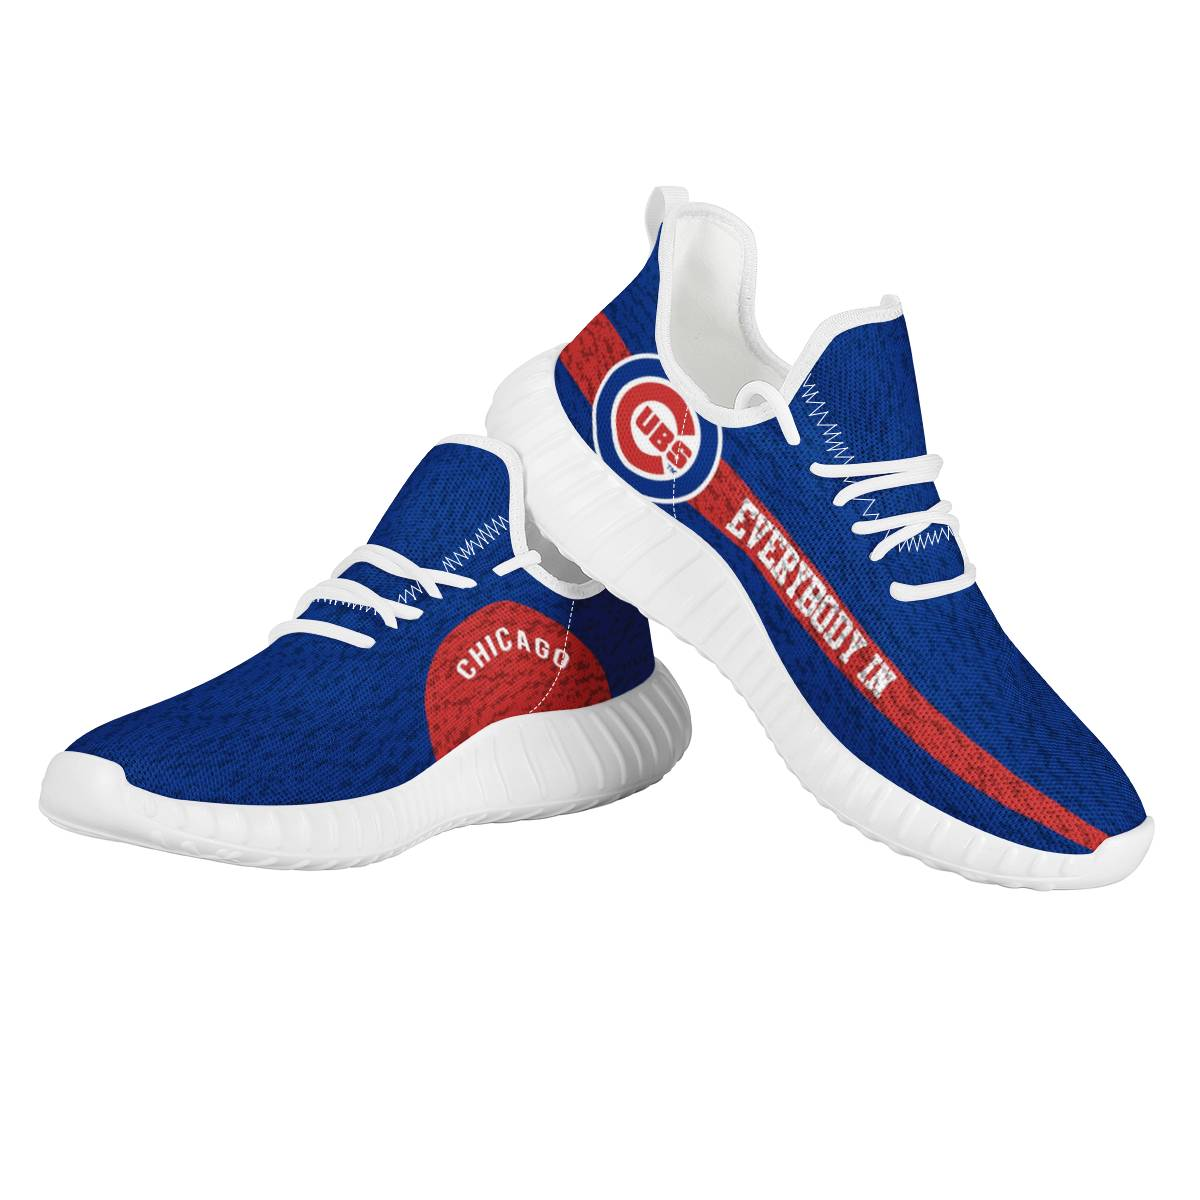 Women's Chicago Cubs Mesh Knit Sneakers/Shoes 011